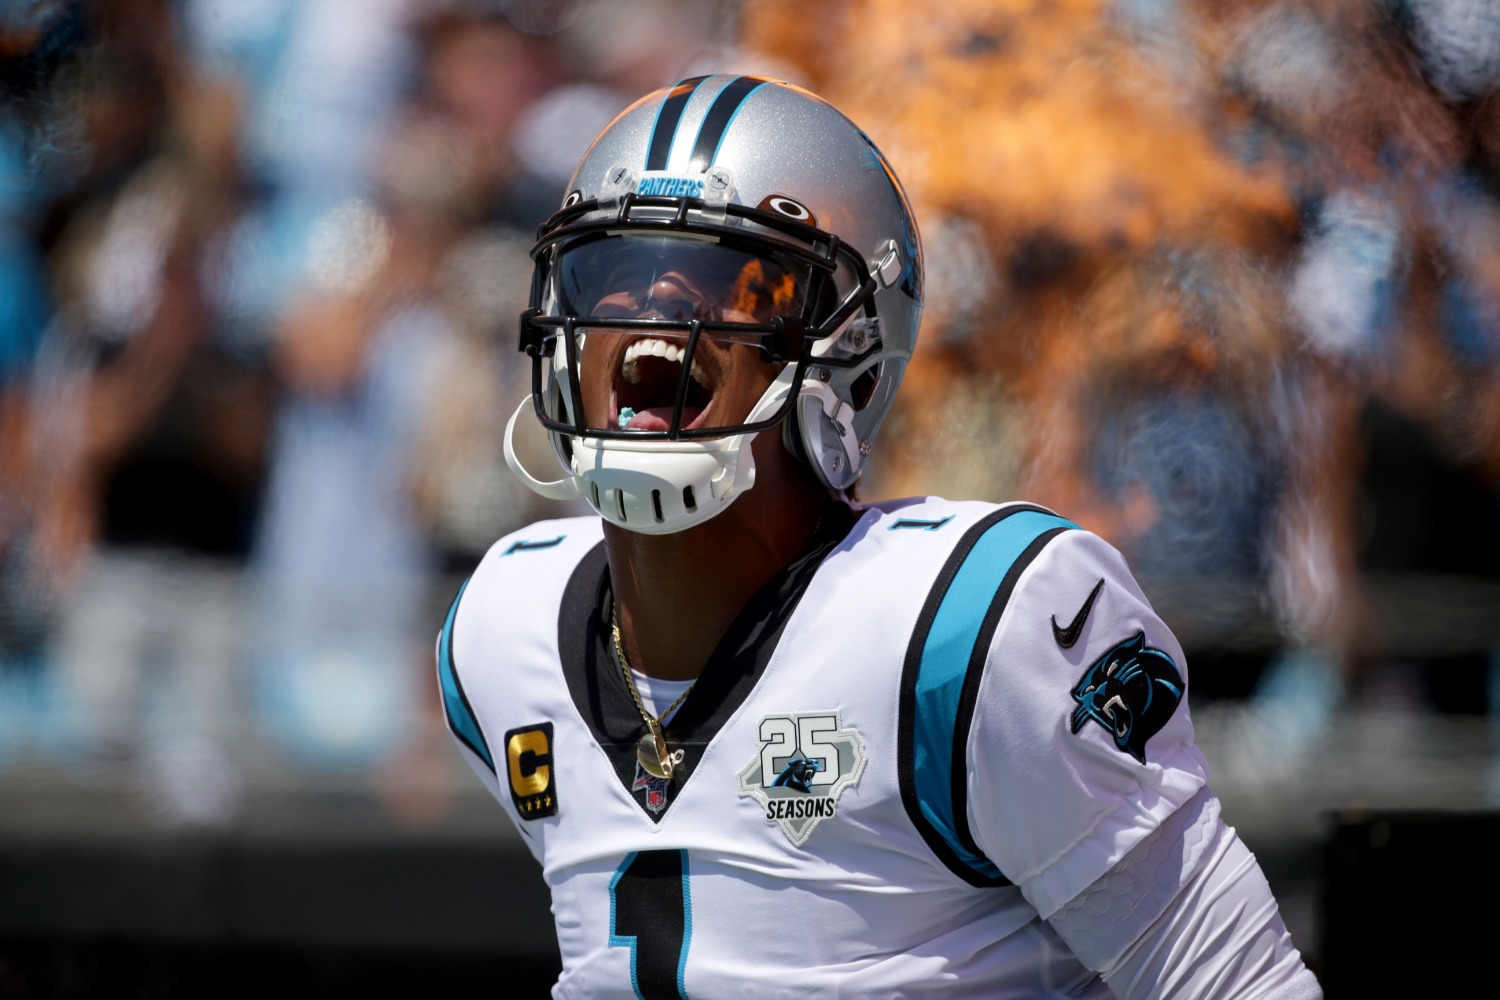 Cam Newton just delivered a message Patriots head coach Bill Belichick would apprecaite.